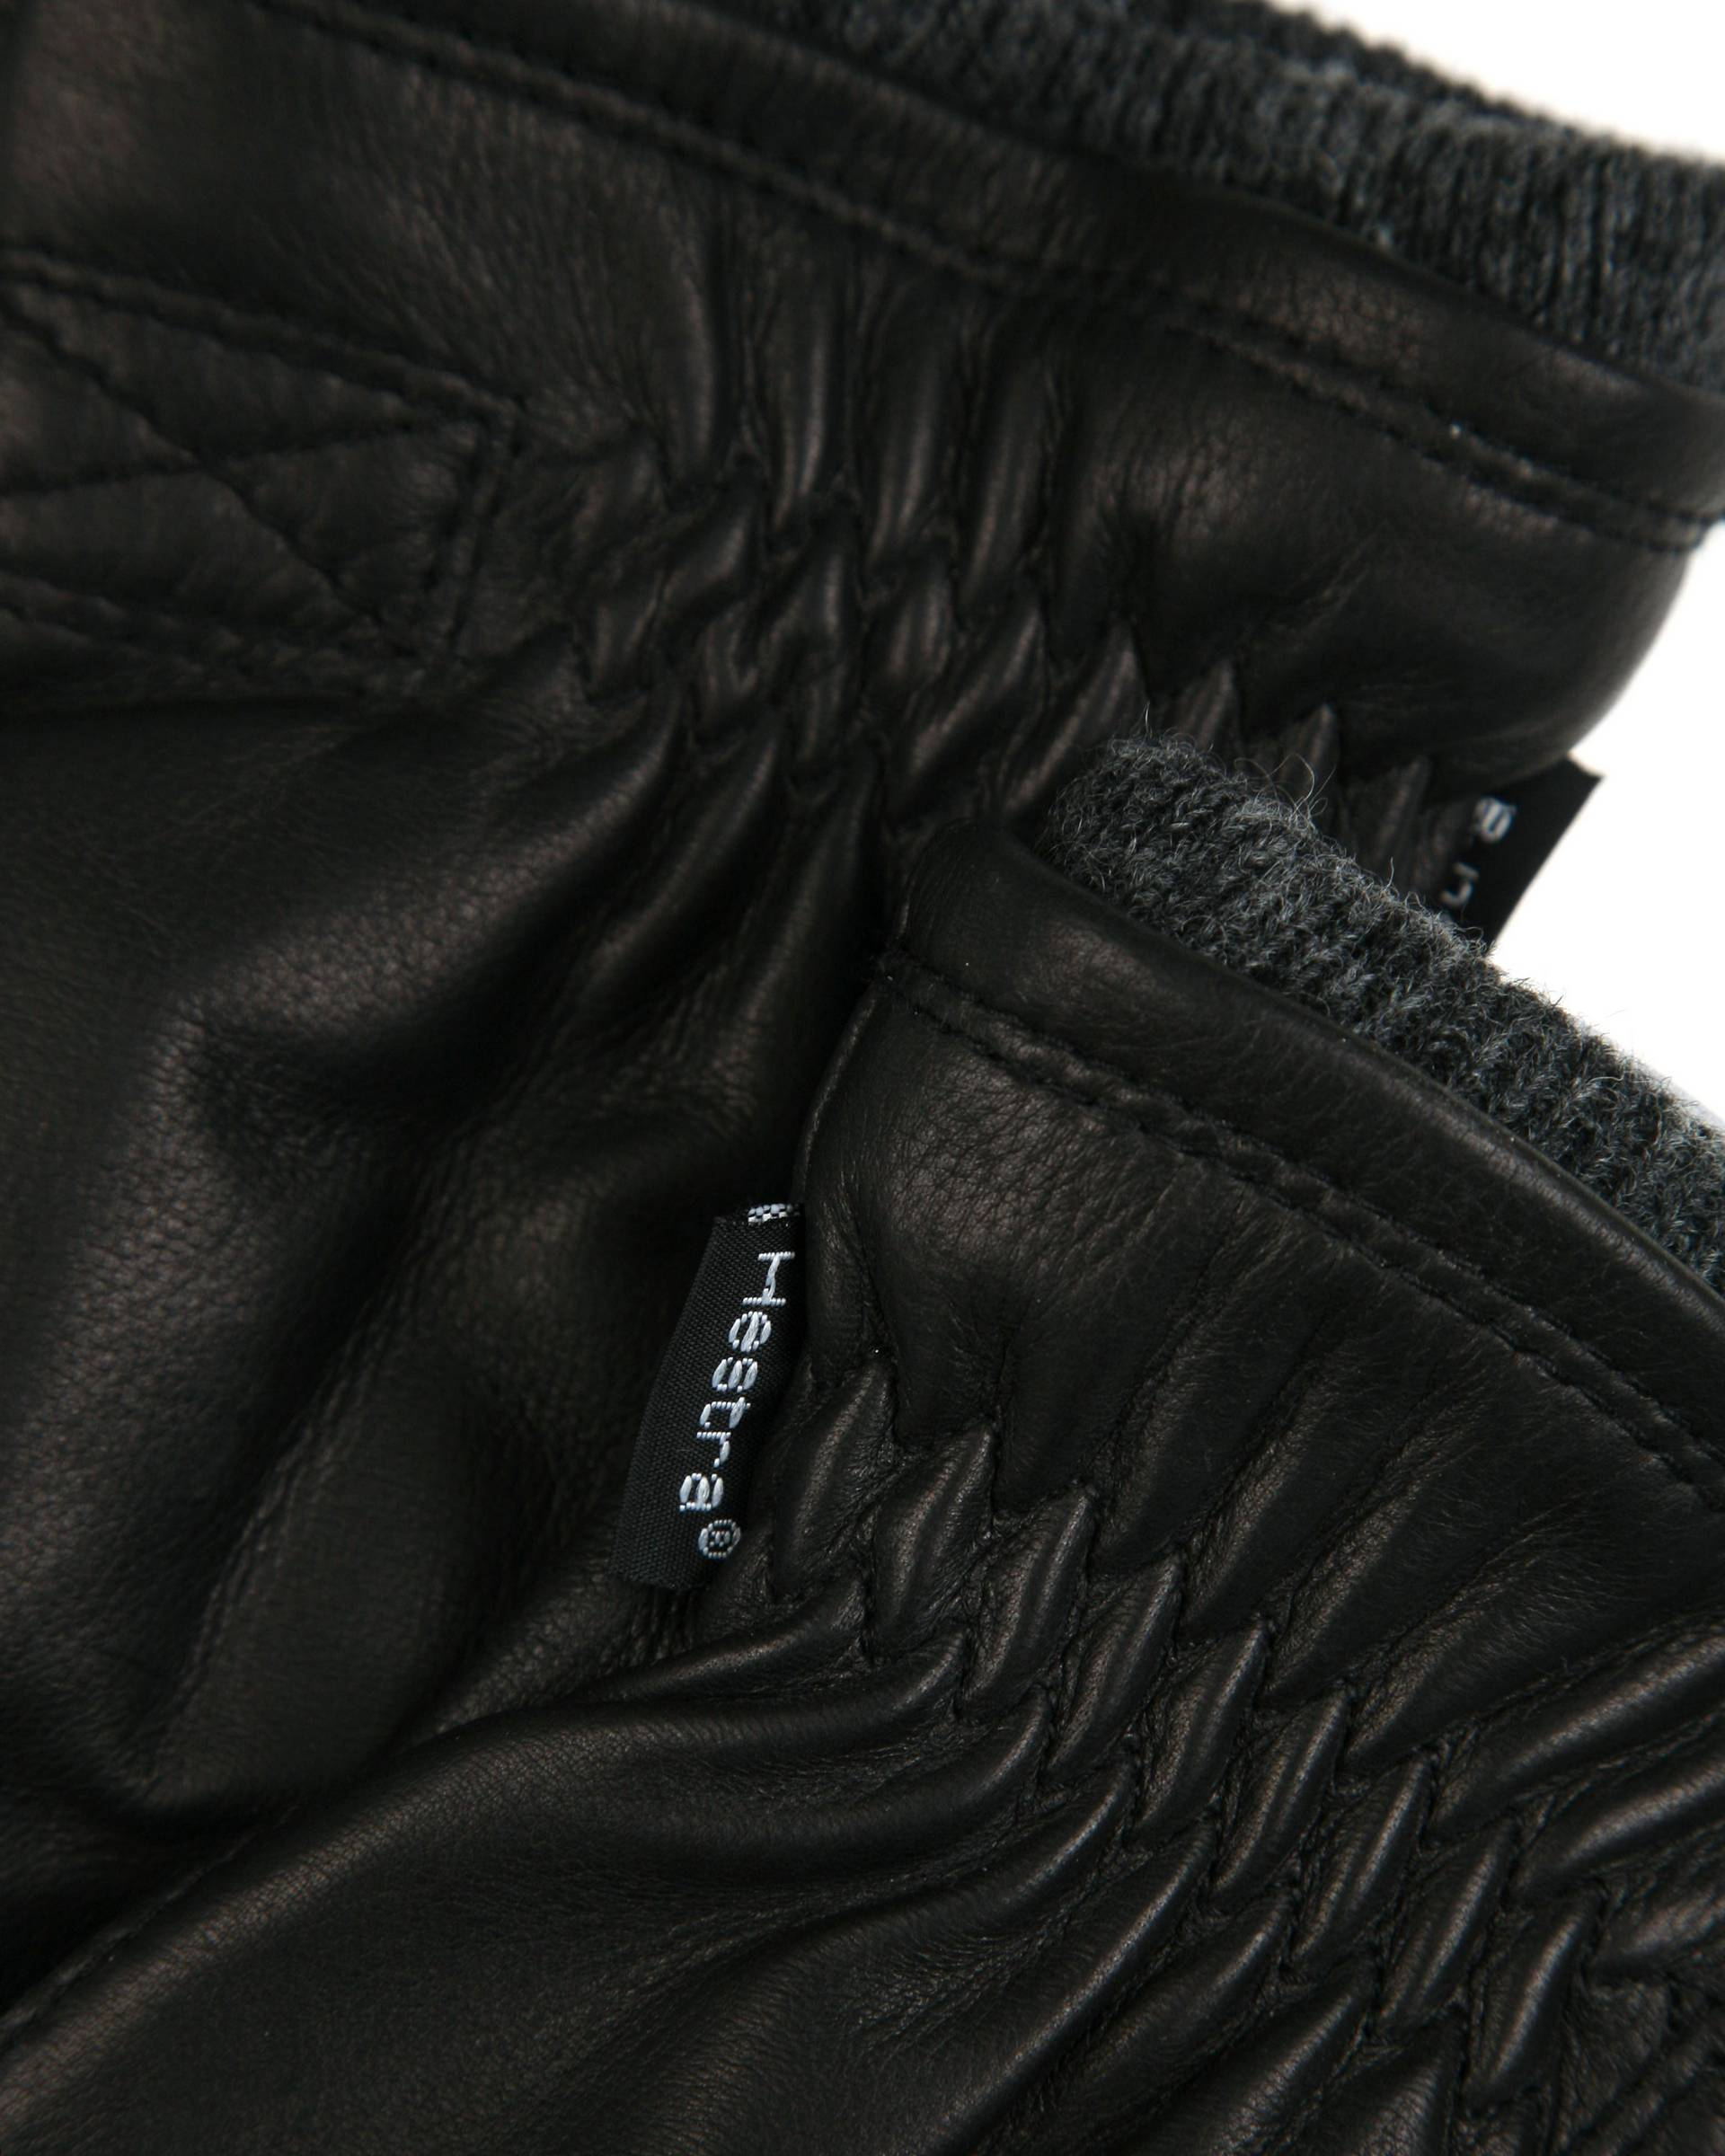 Перчатки Hestra 2047 Black Leather Gloves